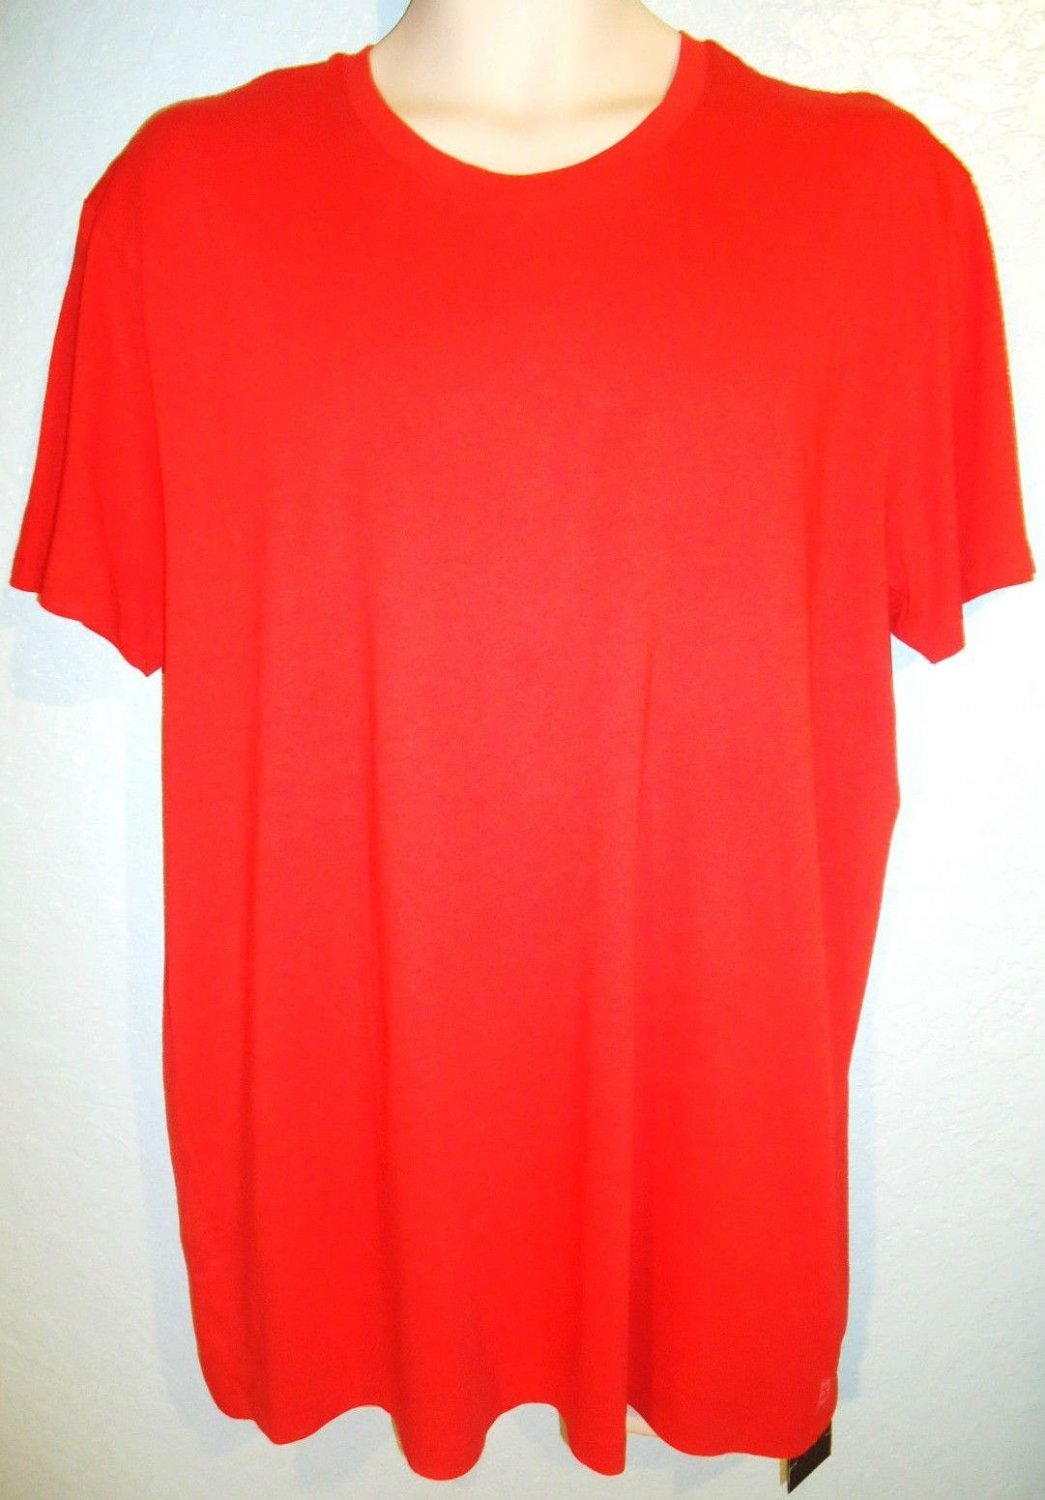 ARMANI EXCHANGE - A|X - RED - XL - CREW NECK - MUSCLE - TEE - NEW - T-SHIRT - #1